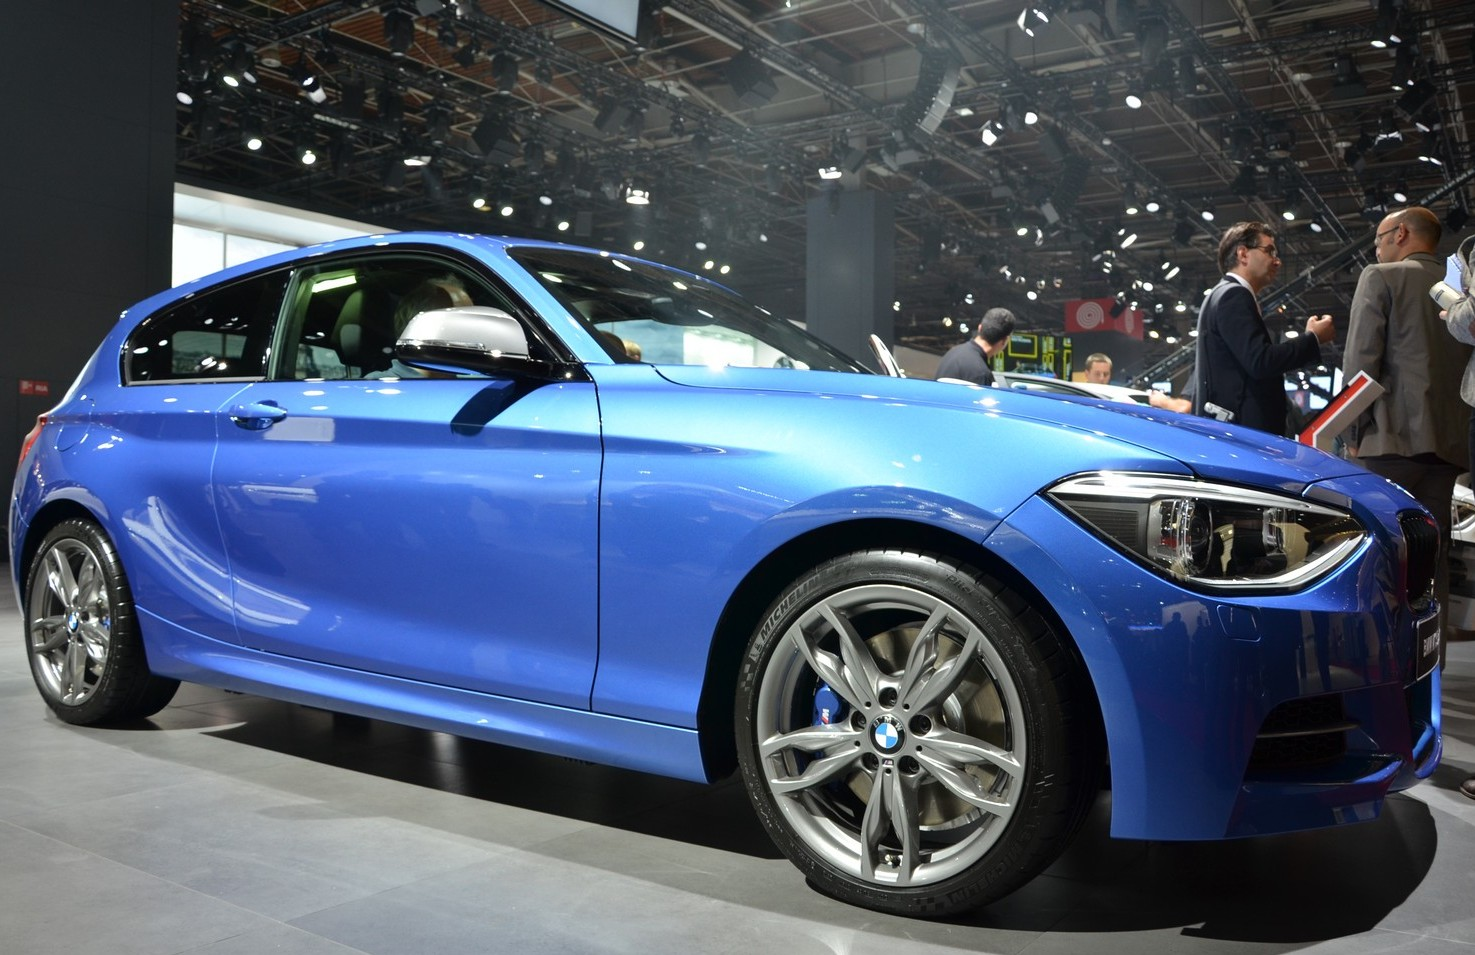 Featured Image of 2012 BMW M135i XDrive At Paris Motor Show